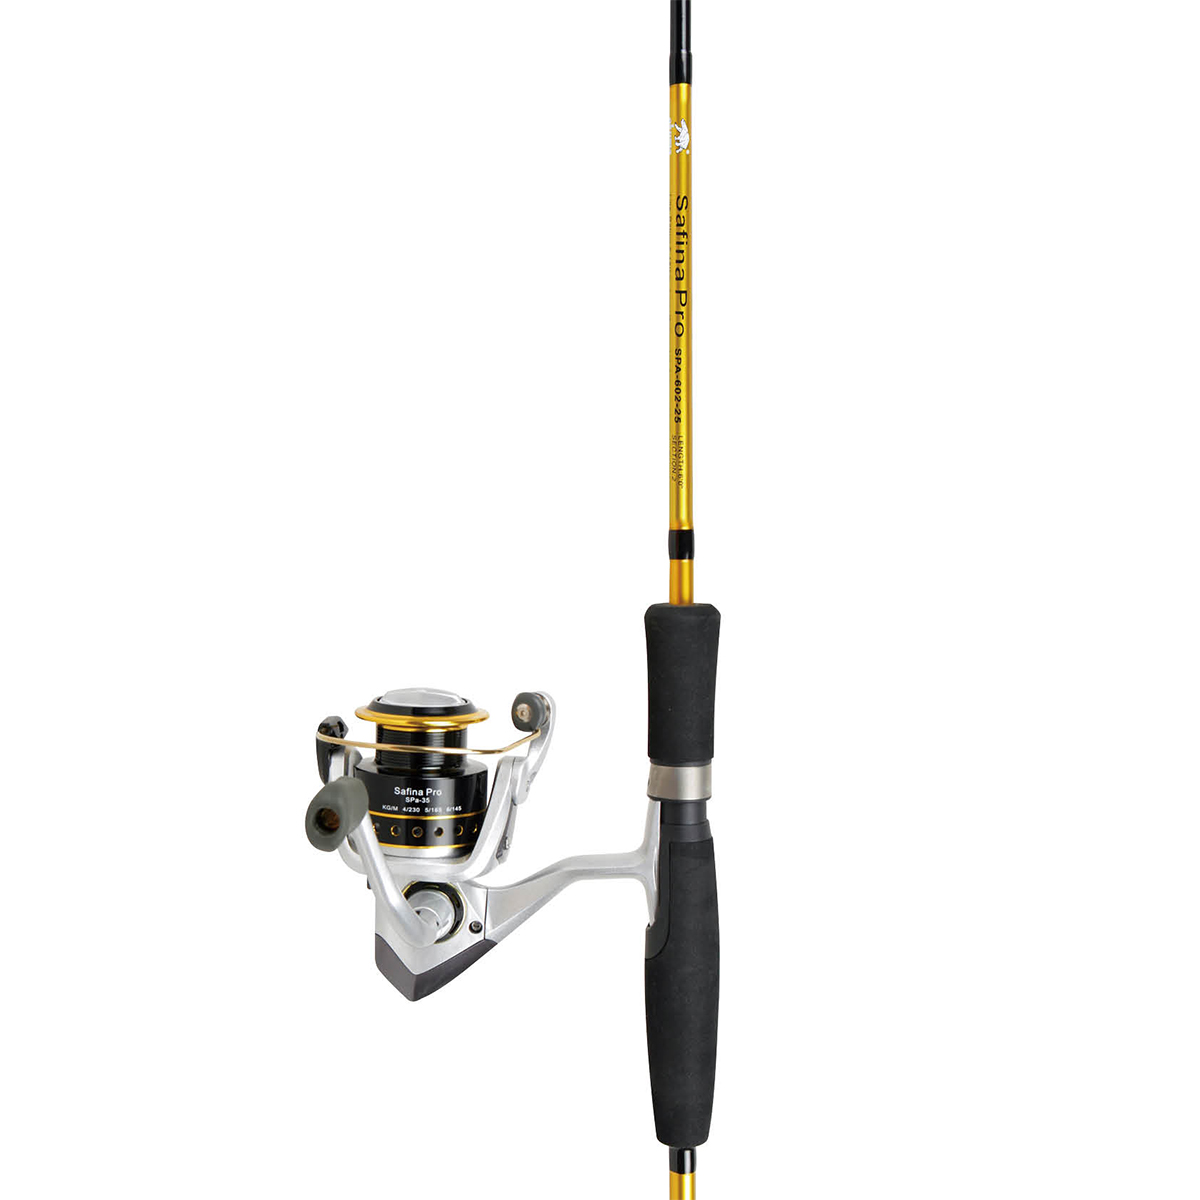 Fishing rods and reels safina pro spinning combos for Professional fishing gear